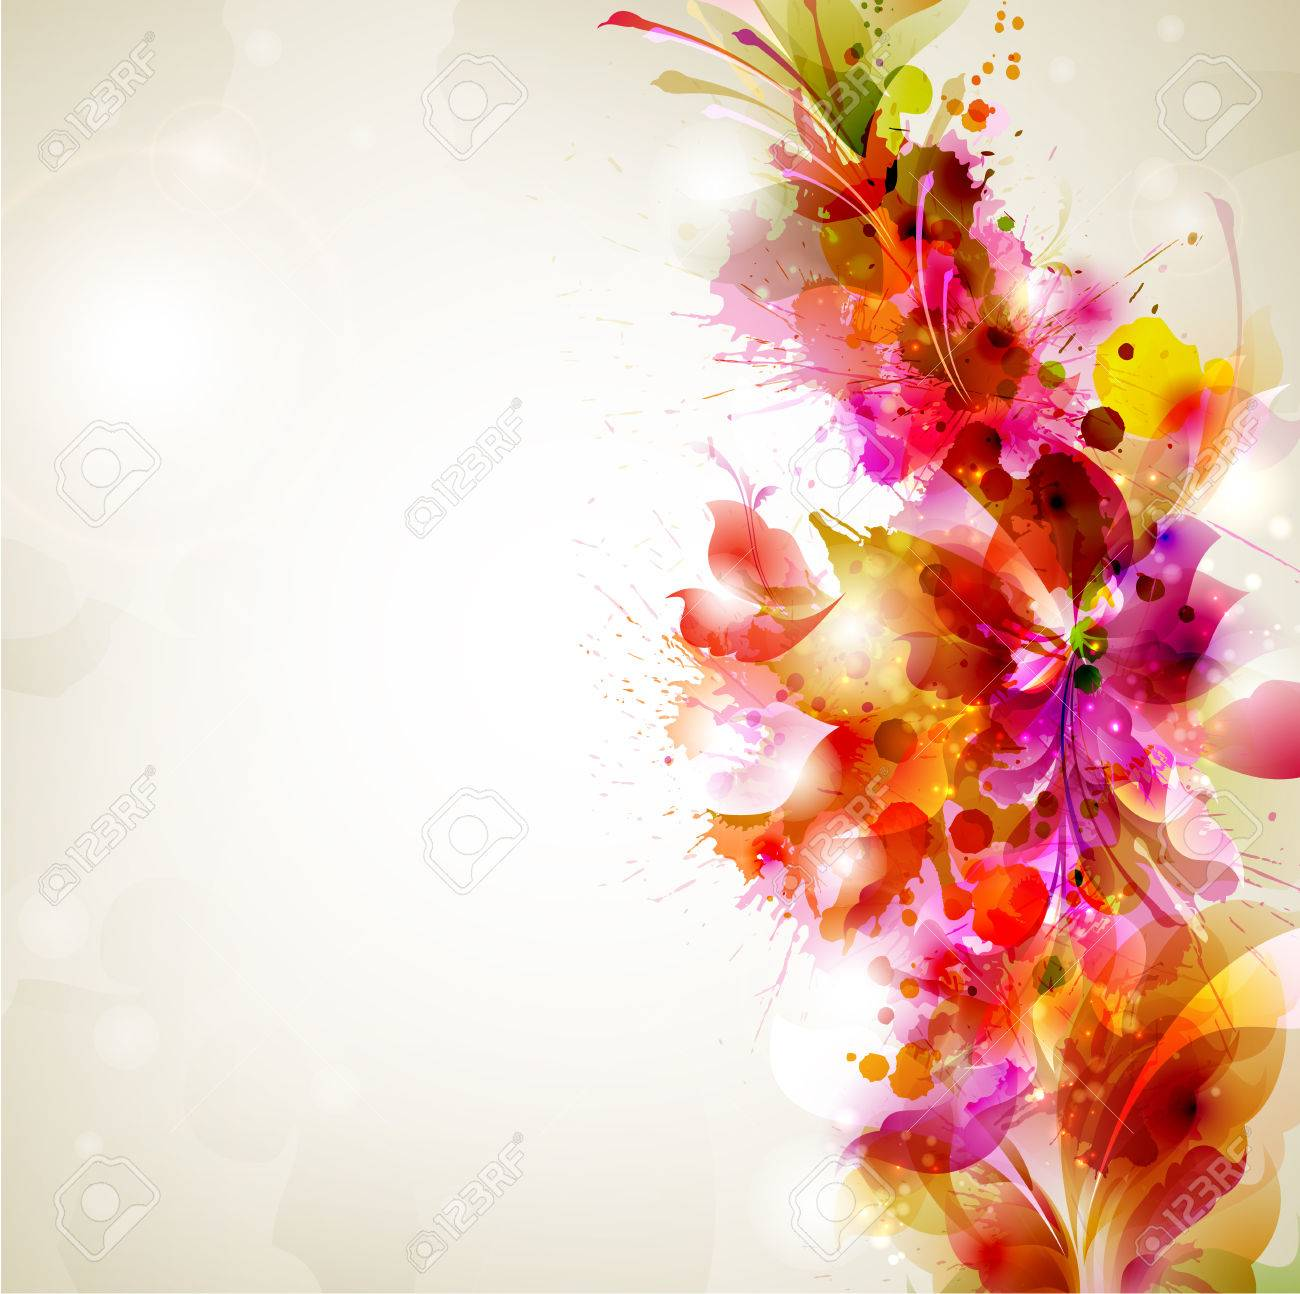 Abstract background with flower and design elements Stock Vector - 25203382